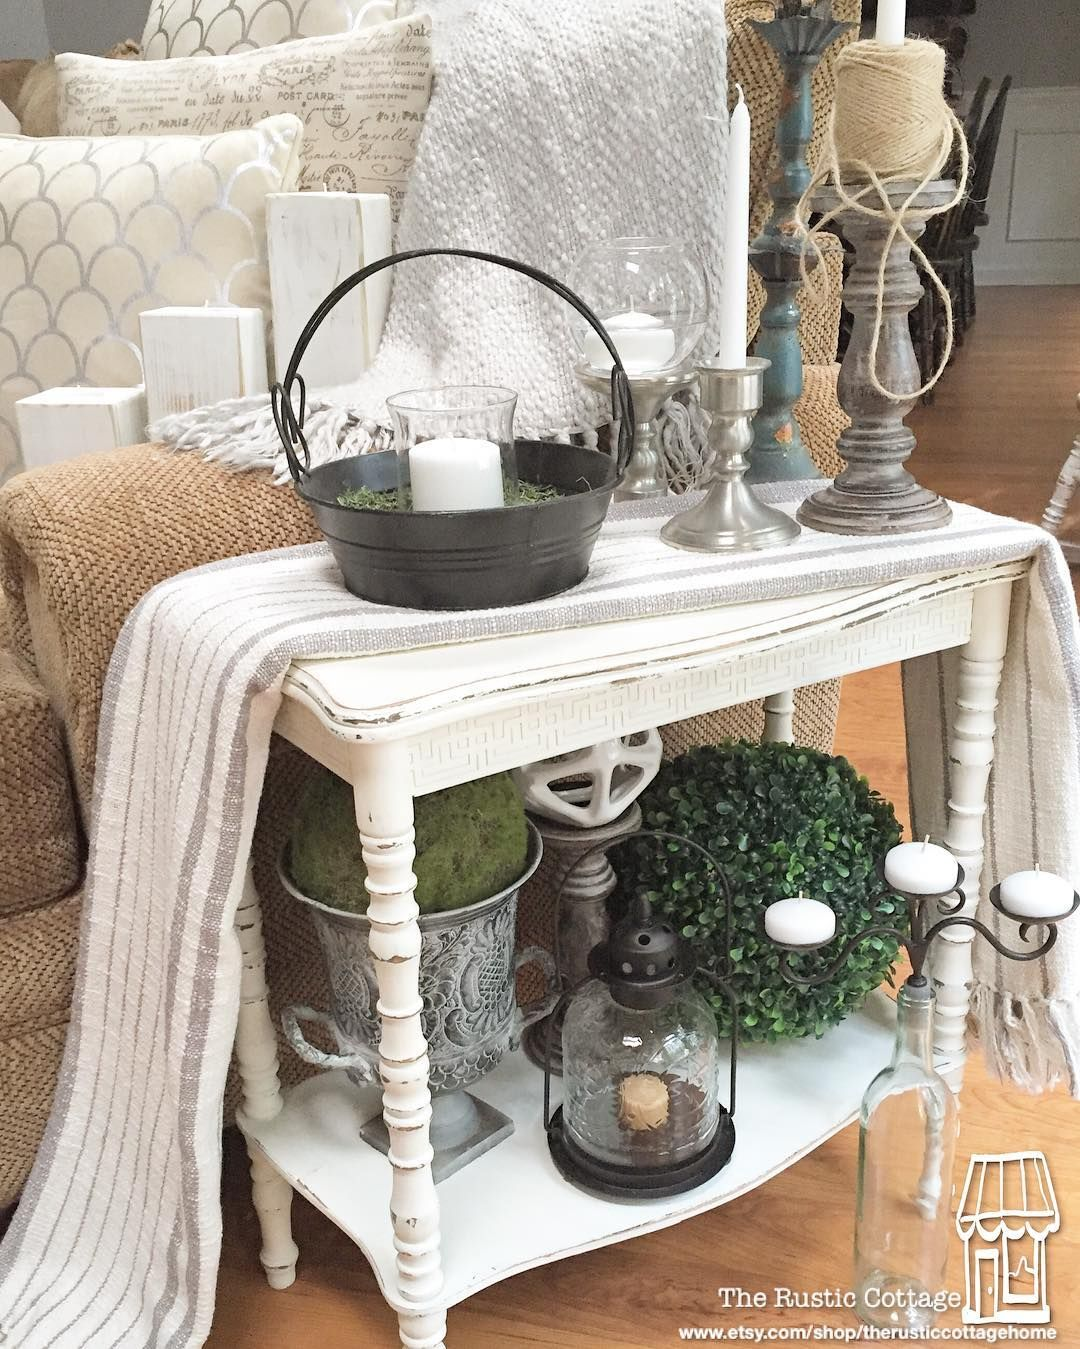 Hey guys!! Keep those photos coming for #chapelcottagecrushes . THEME: Candles  HOSTS: @chapelcottagechicks @therusticcottage .  . Also sharing this #vignette for these #tuesday #hashtag . #chippylicious -for my #antique #chippy #table (hosts @thetatteredpew @abluenest @loved_by_lace @welcome_to_the_neibaurhood @livandgracerestored_ @pinkribboncottage ) .  . #tuesdaytableswag (hosts @thewoodenriverhome @rusticmeadowshome @aratariathome @thevintageroad ) ....